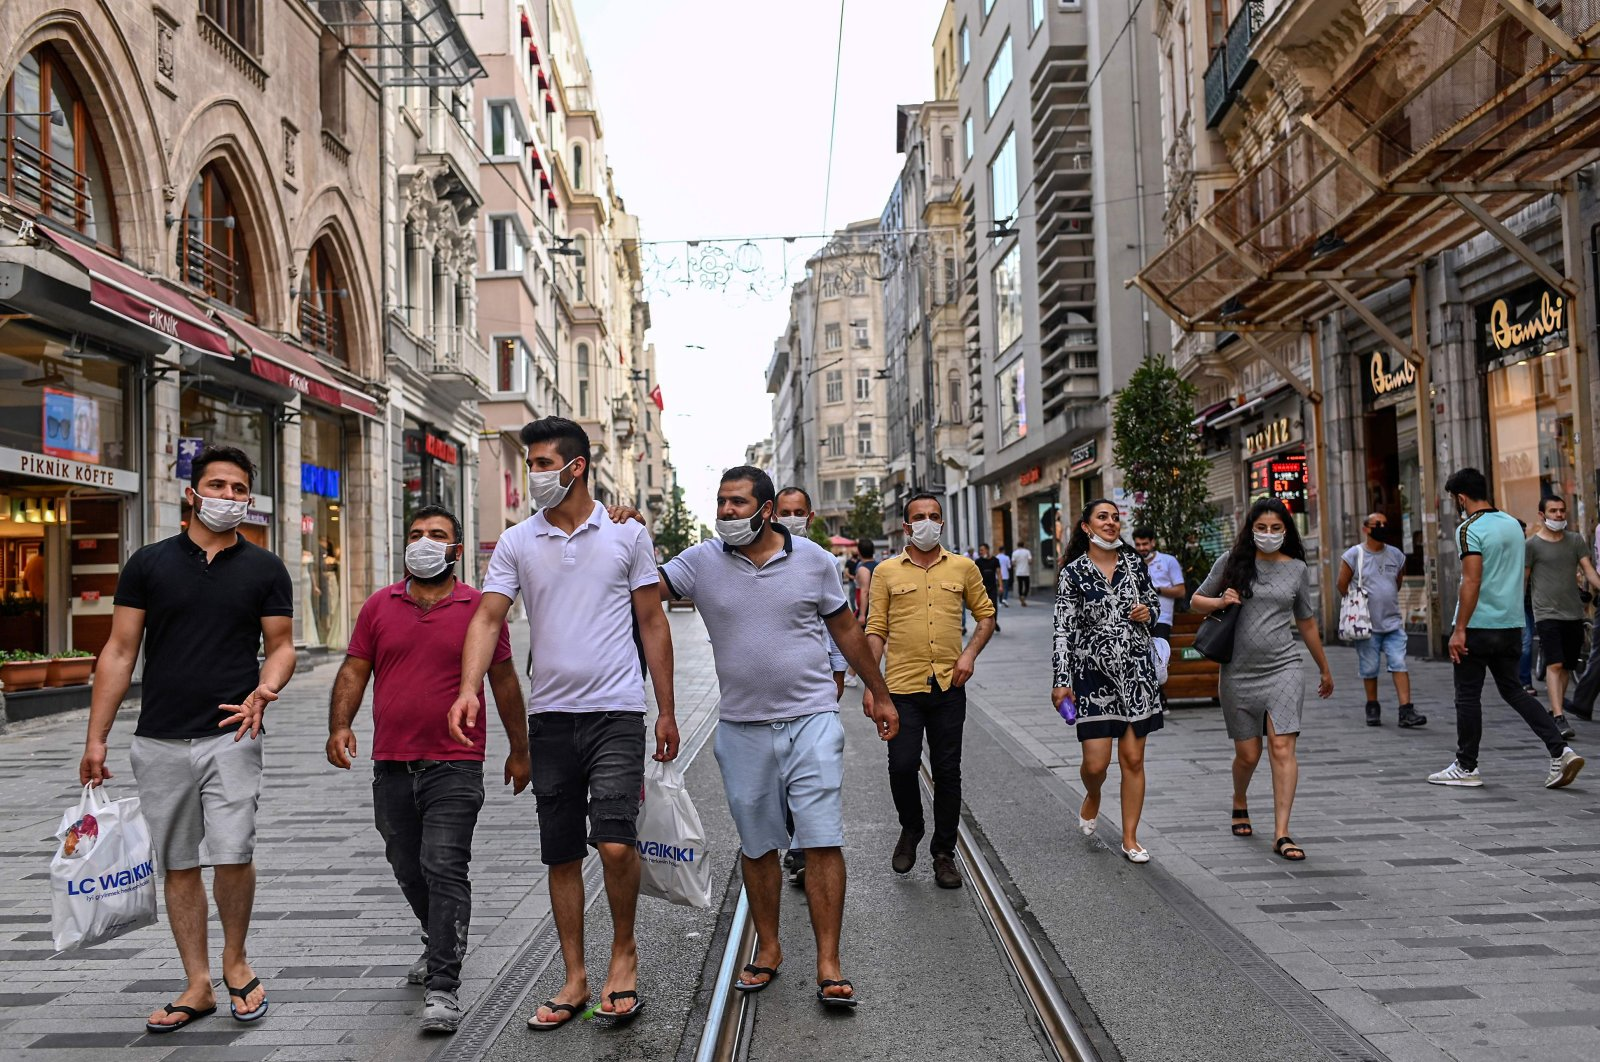 People wearing protective face masks walk on Istiklal Avenue, in Istanbul, Turkey, June 25, 2020. (AFP Photo)